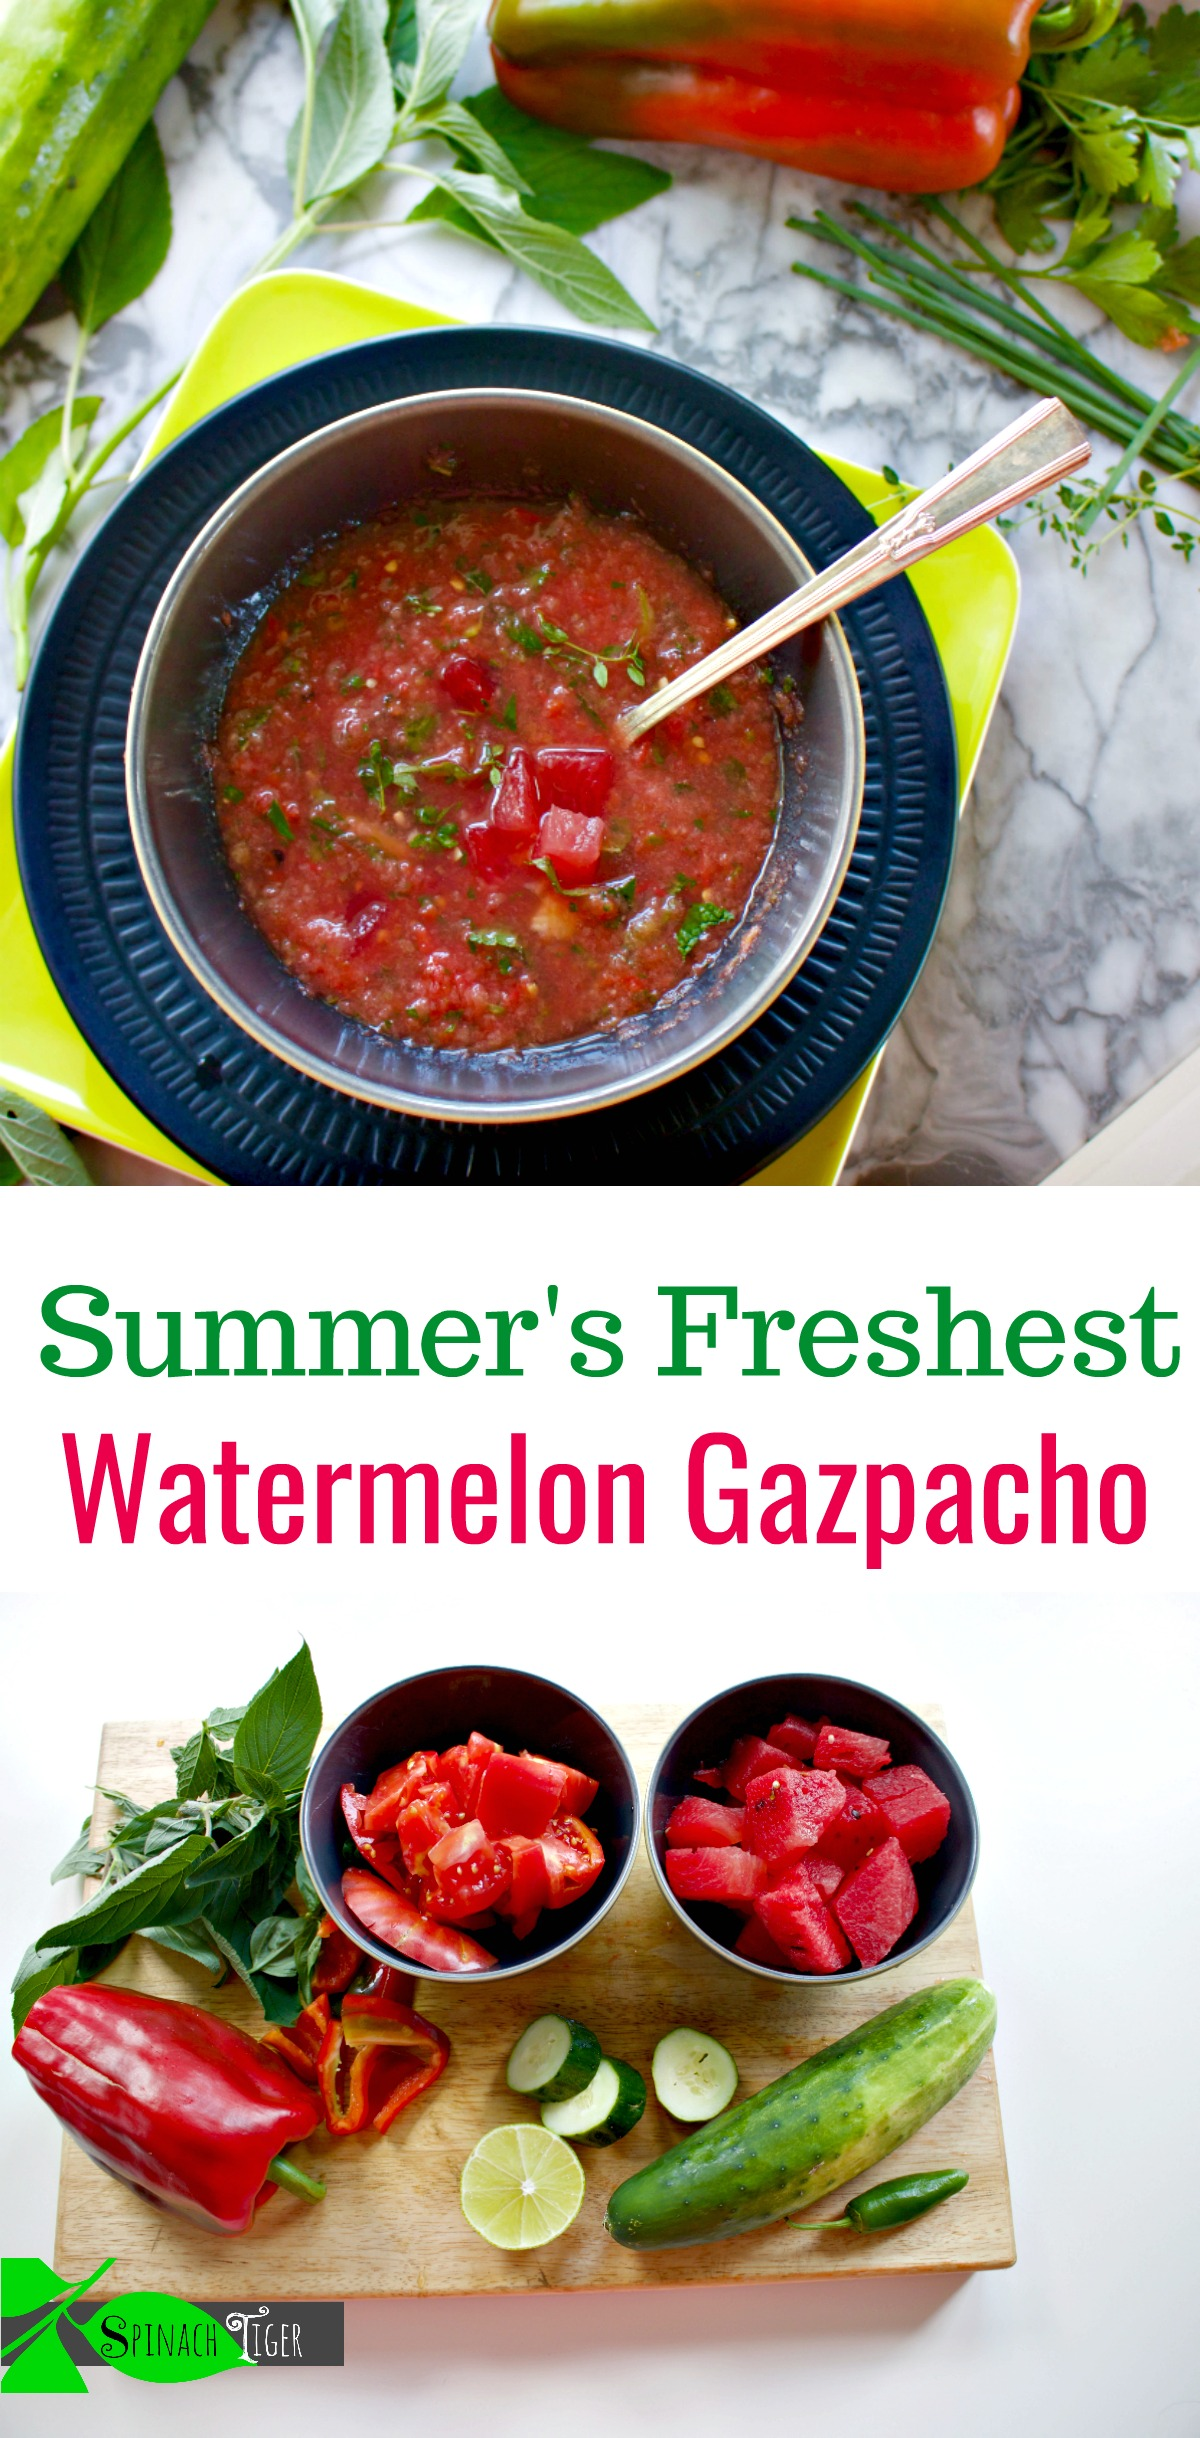 Recipe for Watermelon Gazpacho from Spinach Tiger